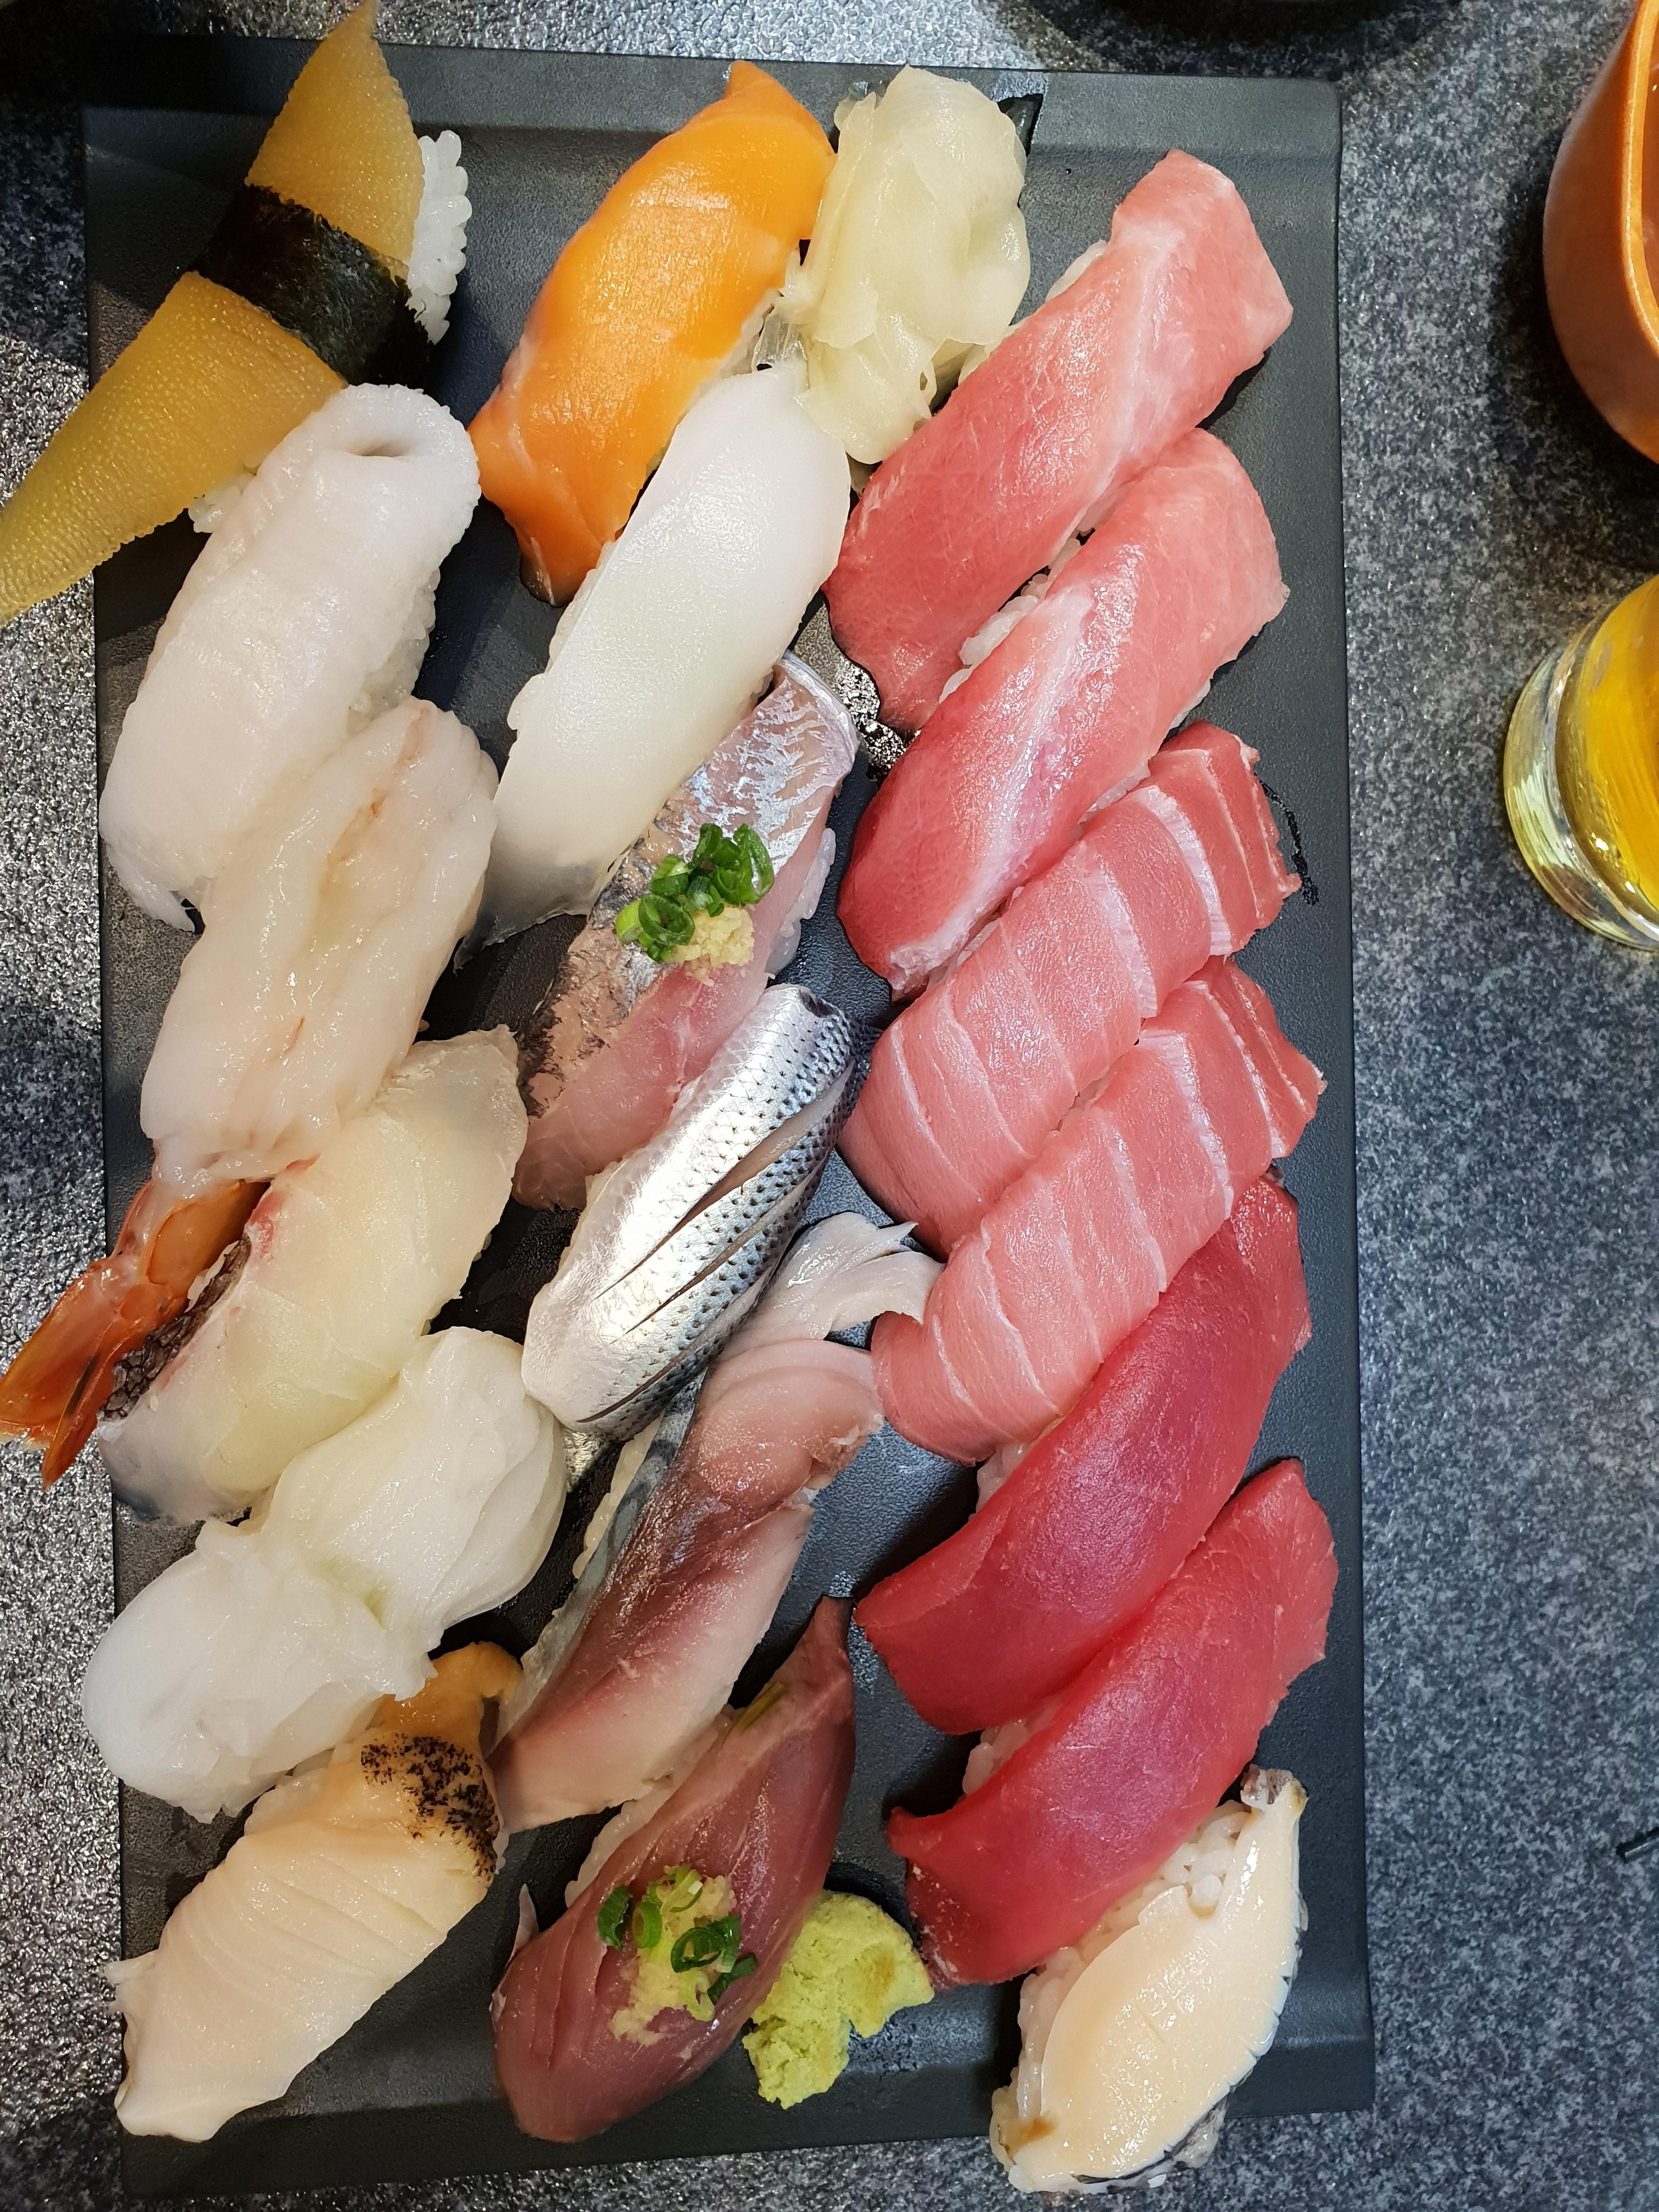 I ate all kinds of sushi food recipes food recipes meals i ate all kinds of sushi food recipes forumfinder Gallery